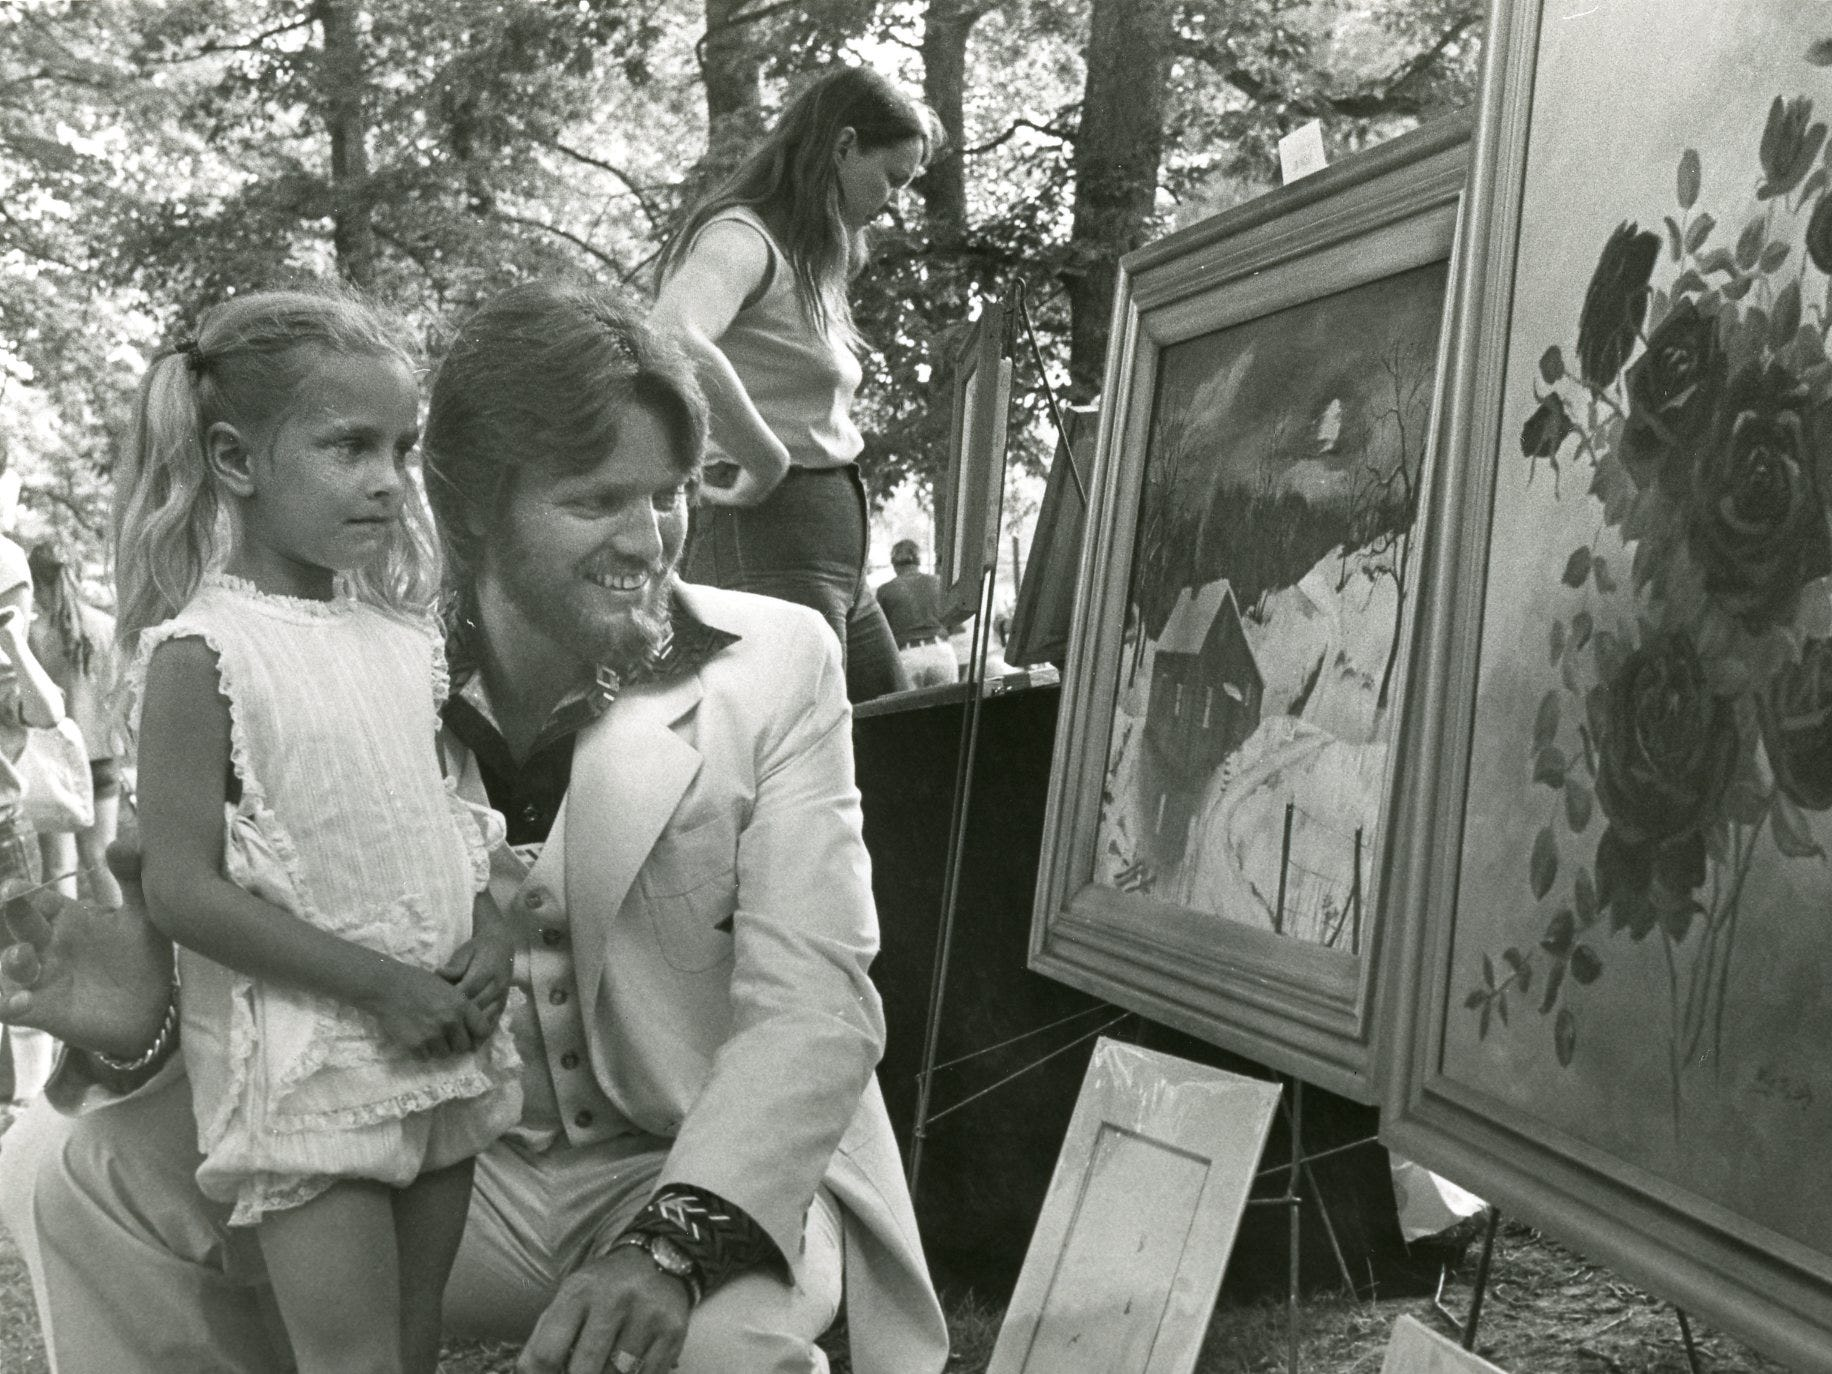 Kelly Wayland and Con Hunley in a photo from a Day in the Park, May, 1977. Hunley was among hundreds of Fountain City residents to spend a day in Fountain City Park for the fourth annual Honor Fountain City Day.